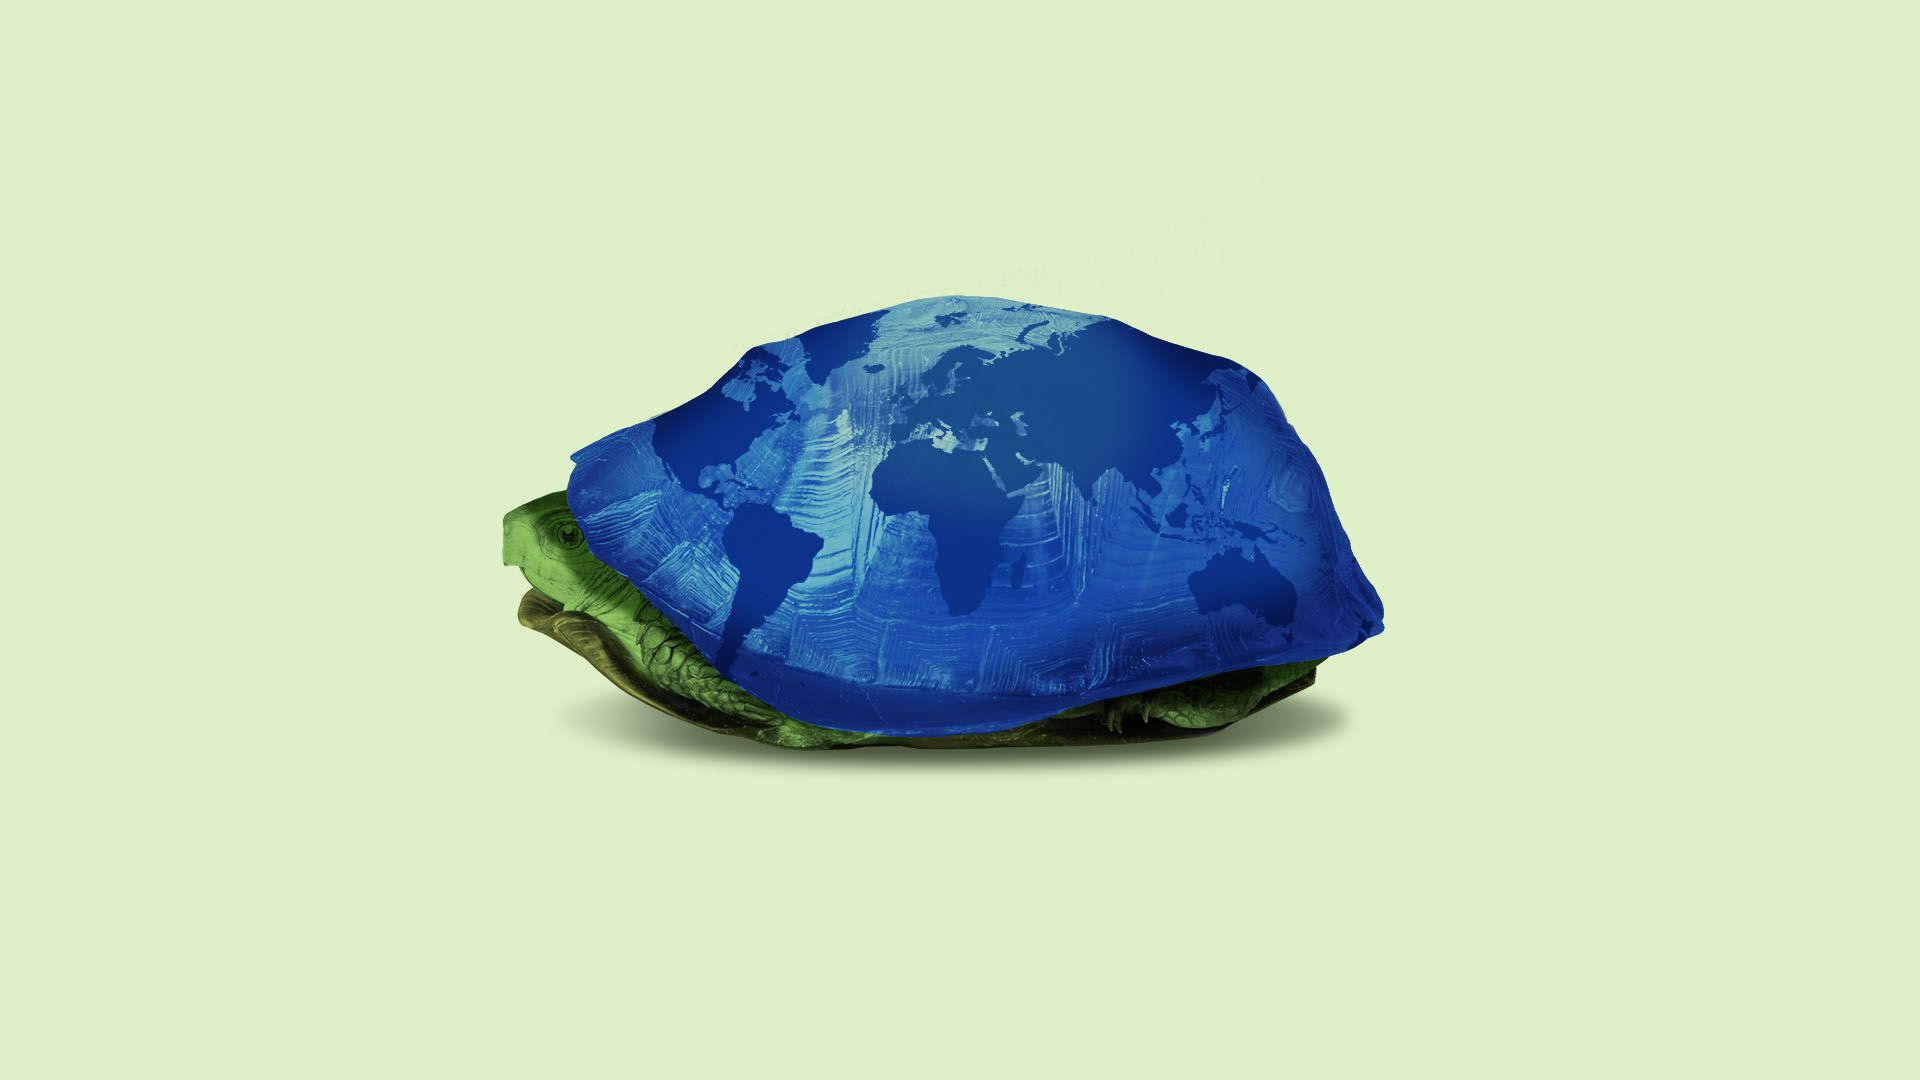 Illustration of a turtle with a globe design hiding in it's shell